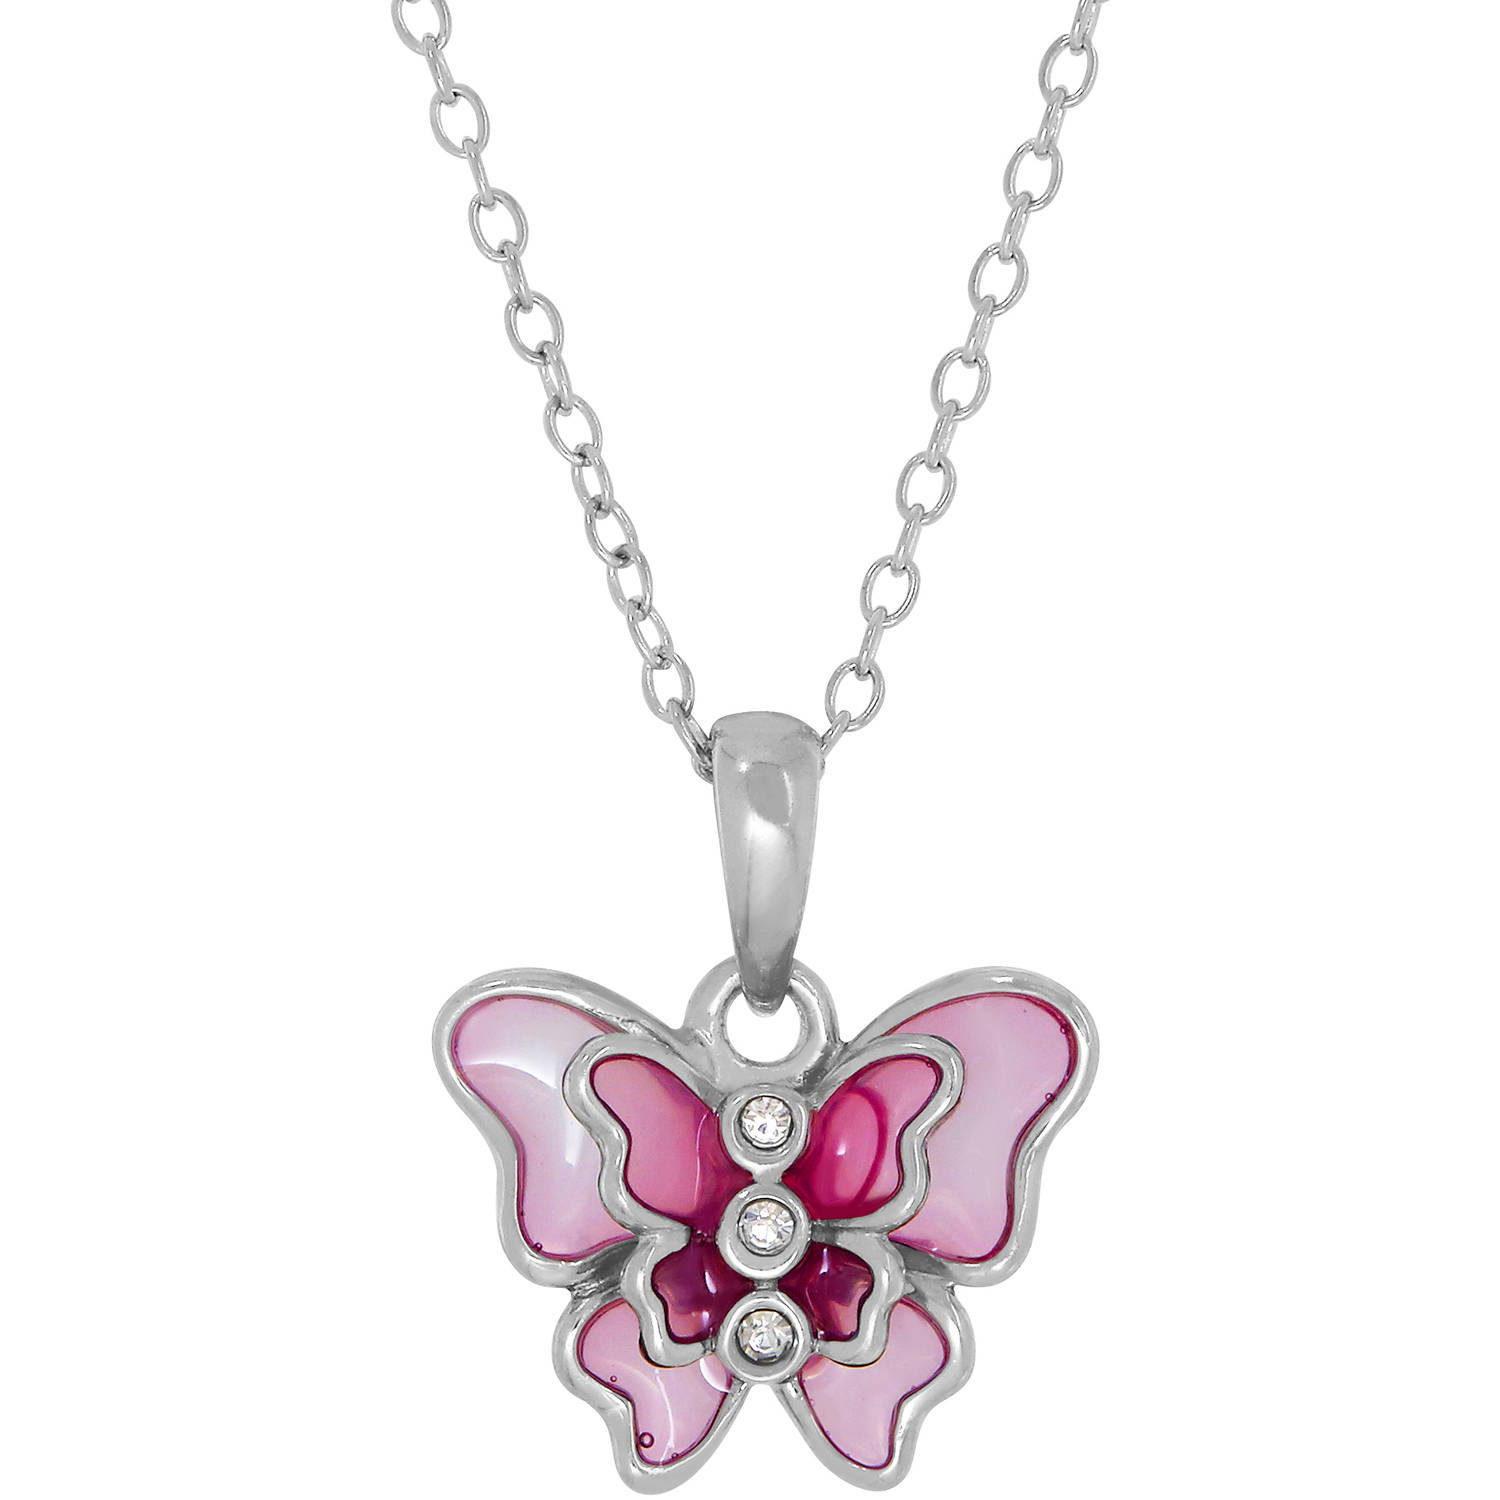 Simply Silver Kids' Sterling Silver Pink Enamel with Swarovski Crystal Butterfly Pendant, 14